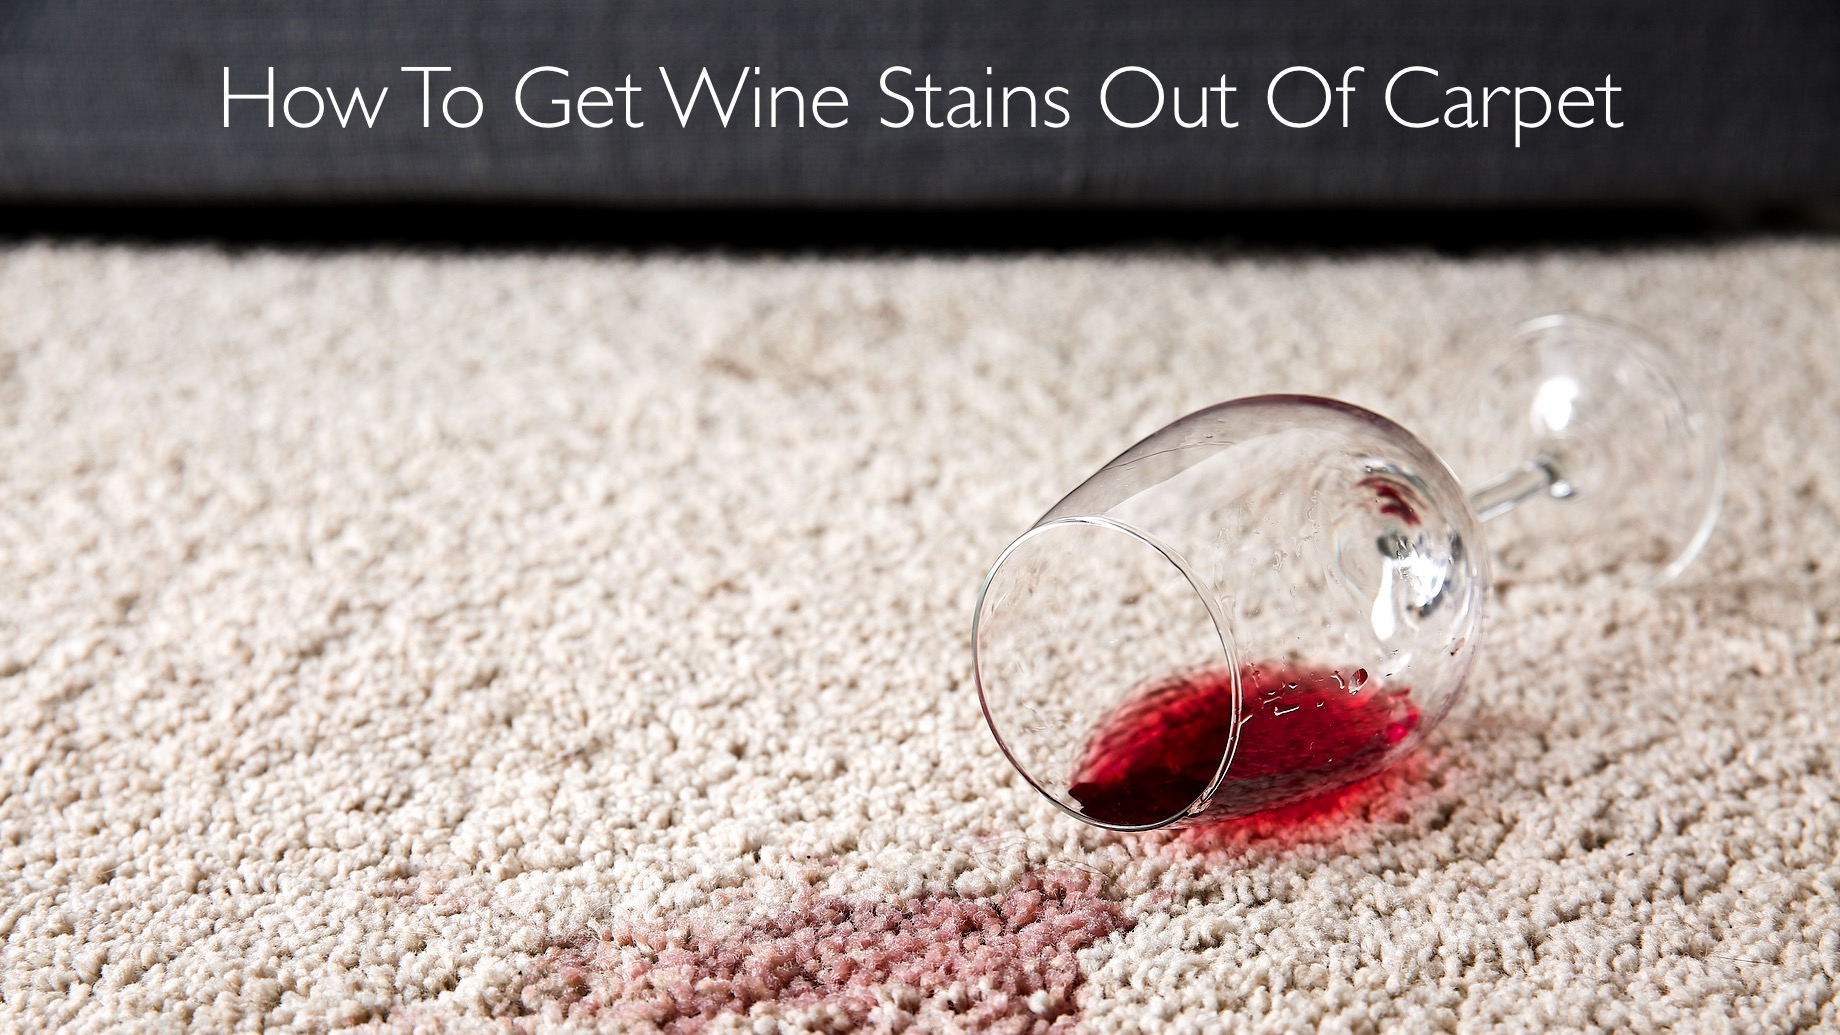 How To Get Wine Stains Out Of Carpet